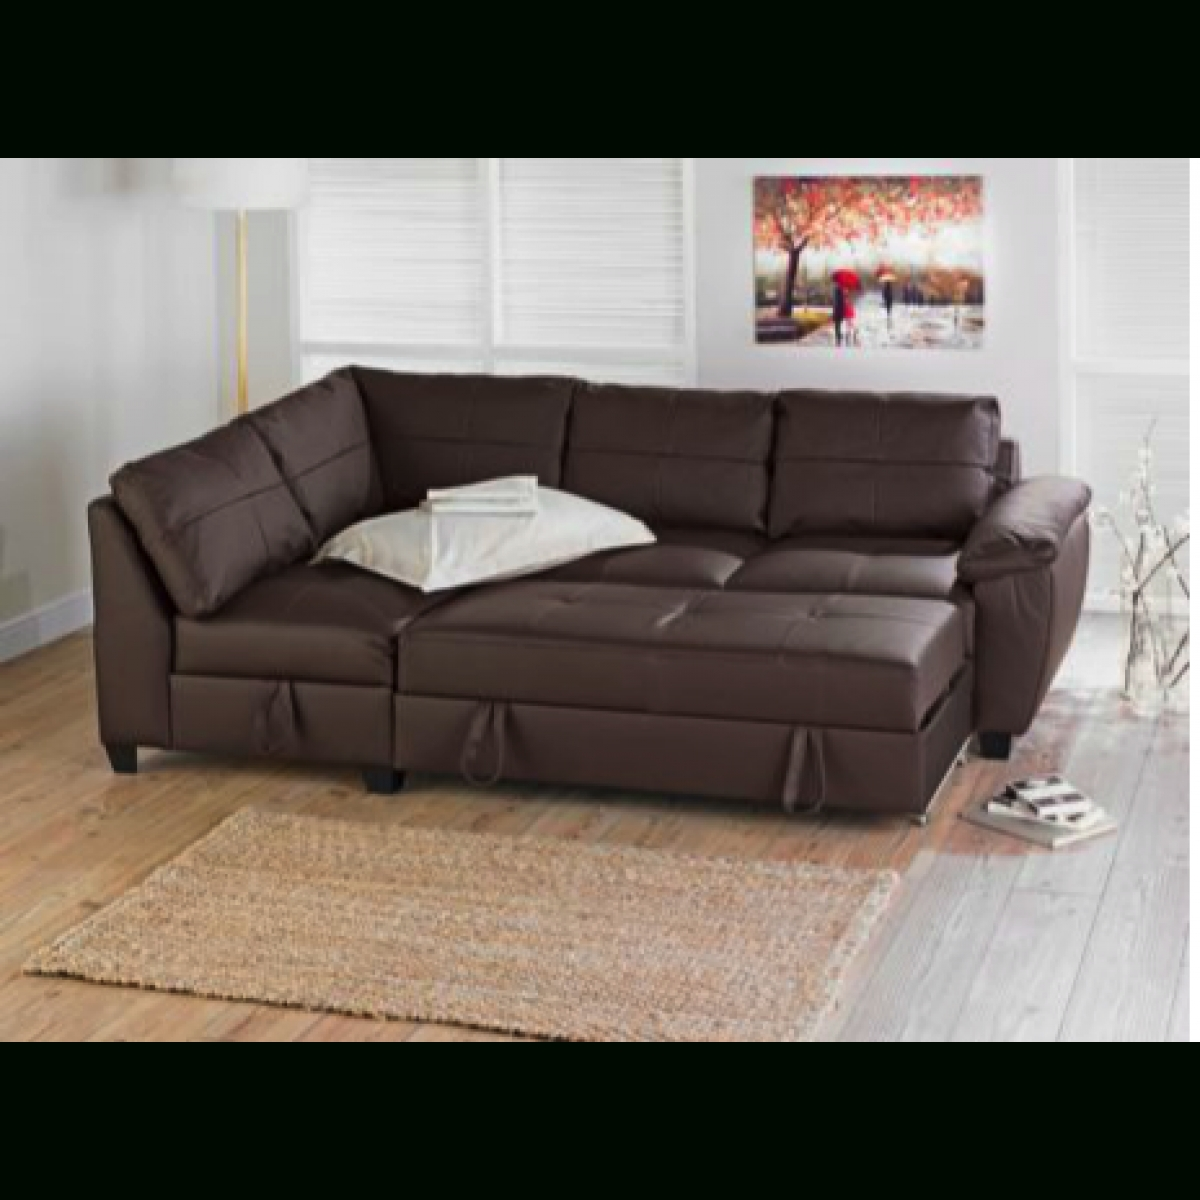 Fernando Leather Left Hand Sofa Bed Corner Group – Chocolate Intended For Corner Sofa Beds (View 13 of 20)